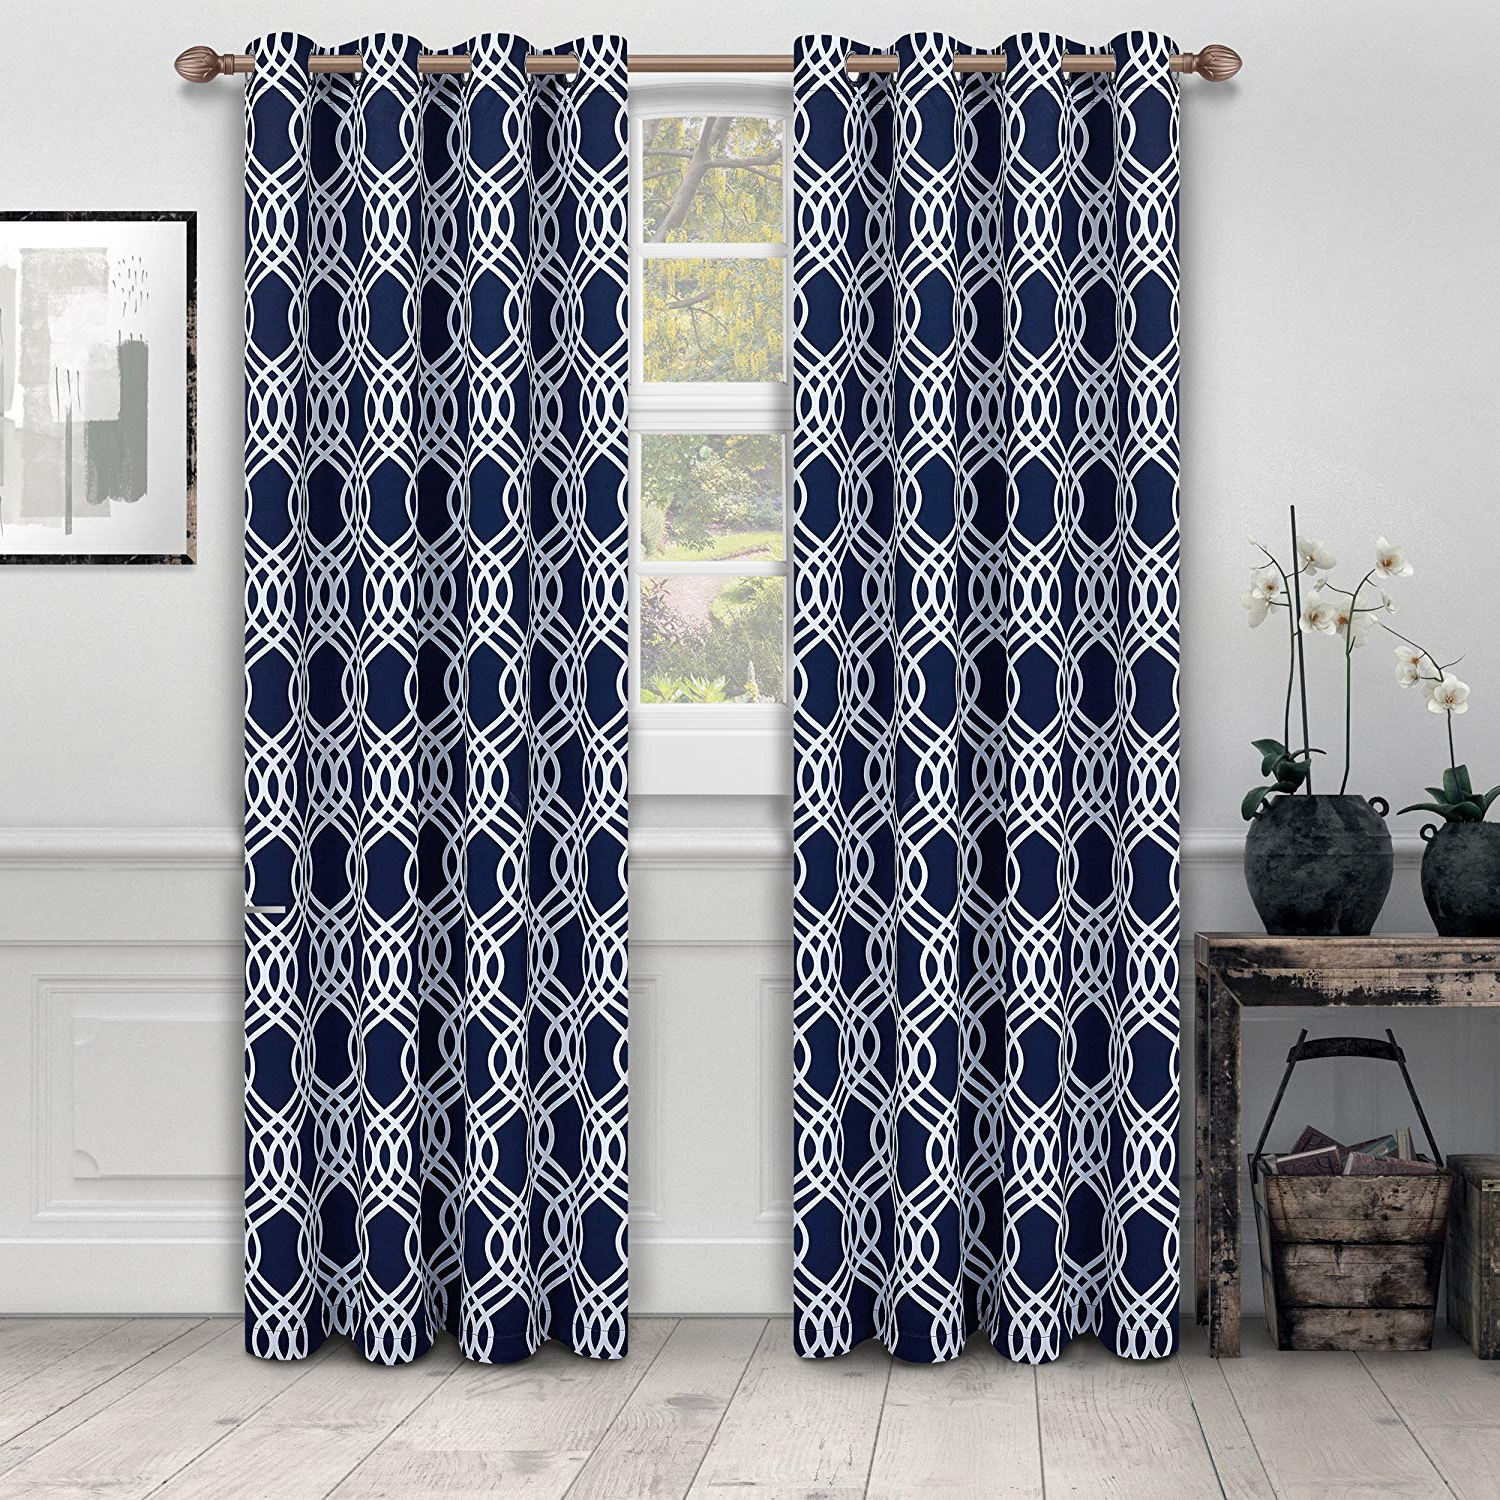 """Superior Solid Insulated Thermal Blackout Grommet Curtain Panel Pairs For Preferred Superior Ribbon Collection Quality Soft, Insulated, Thermal, Woven Blackout Grommet Printed Curtain Panel Pair (set Of 2) 52"""" X 63"""" – Grey (View 20 of 20)"""